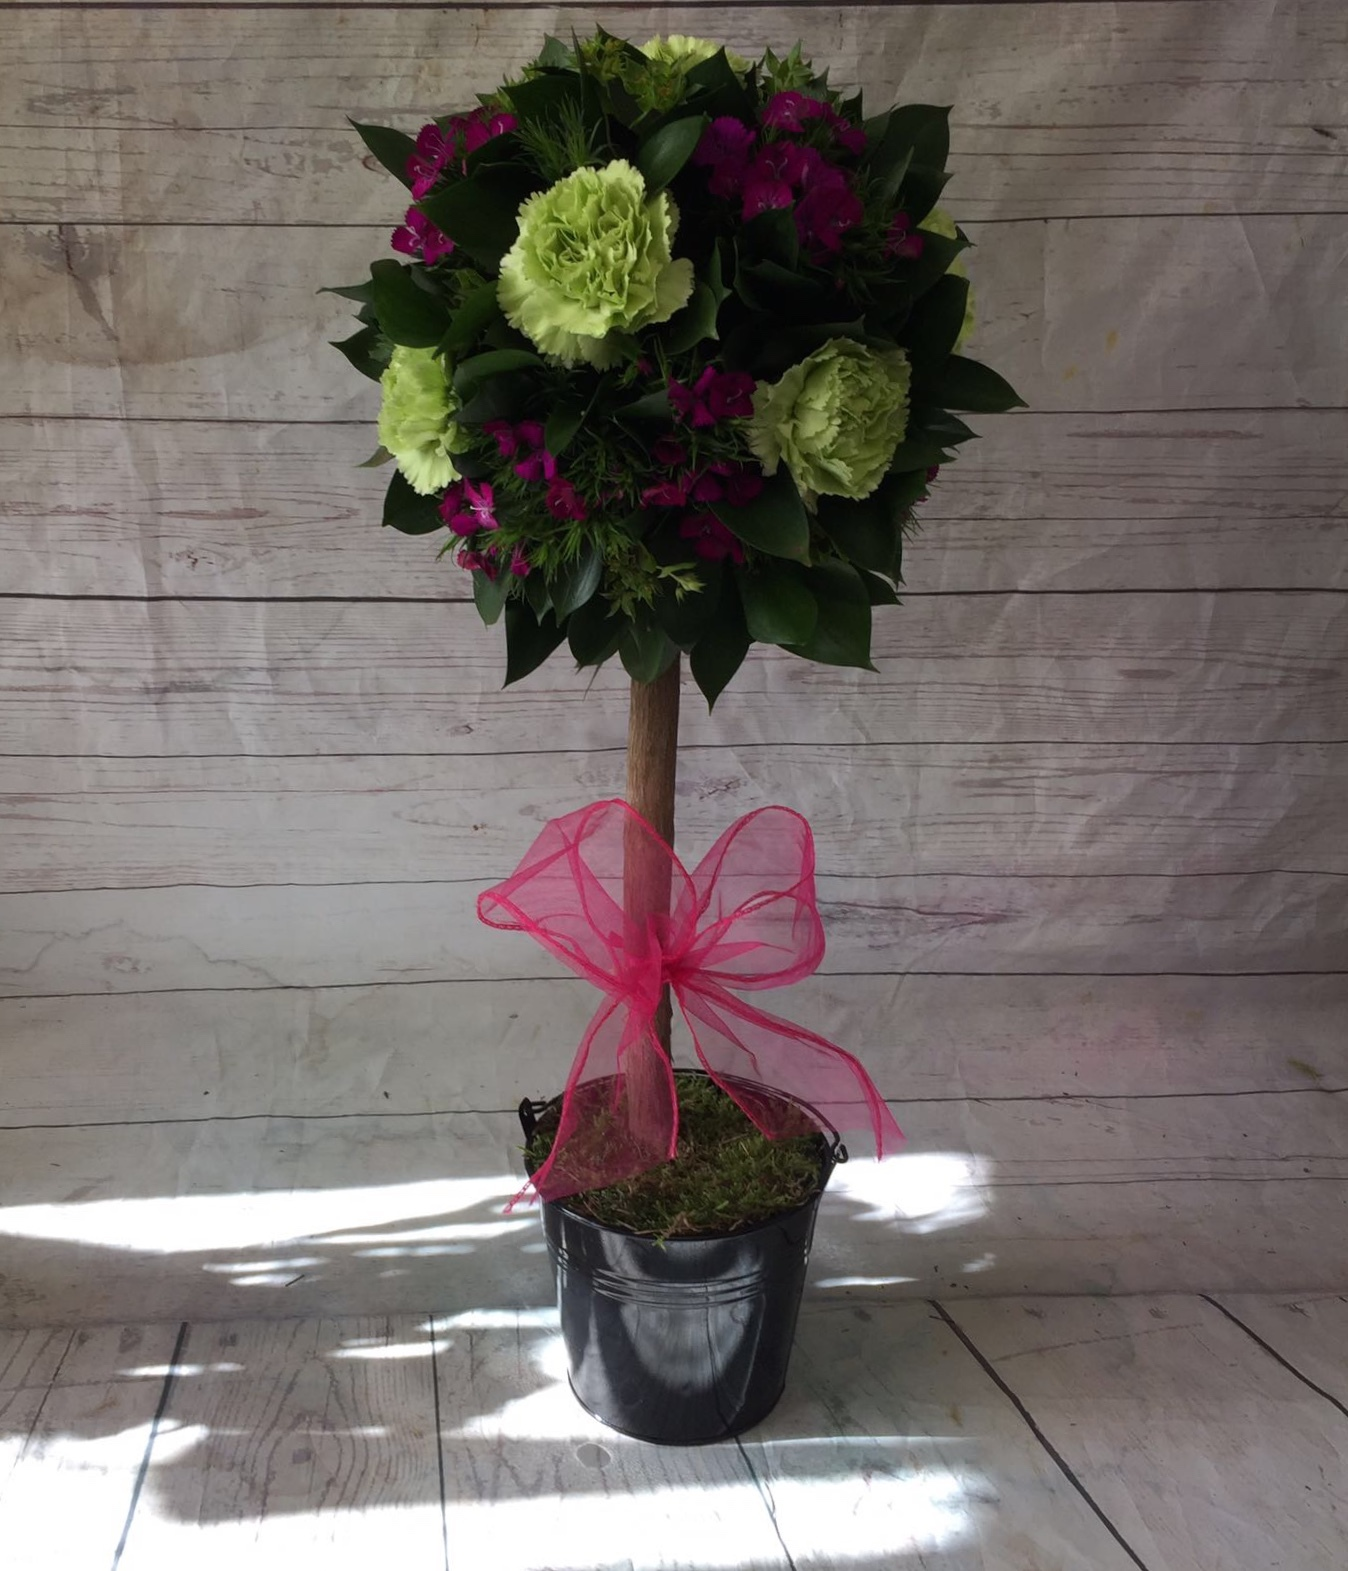 BAY TREE FLORAL DISPLAY Perfect for gifts or center pieces